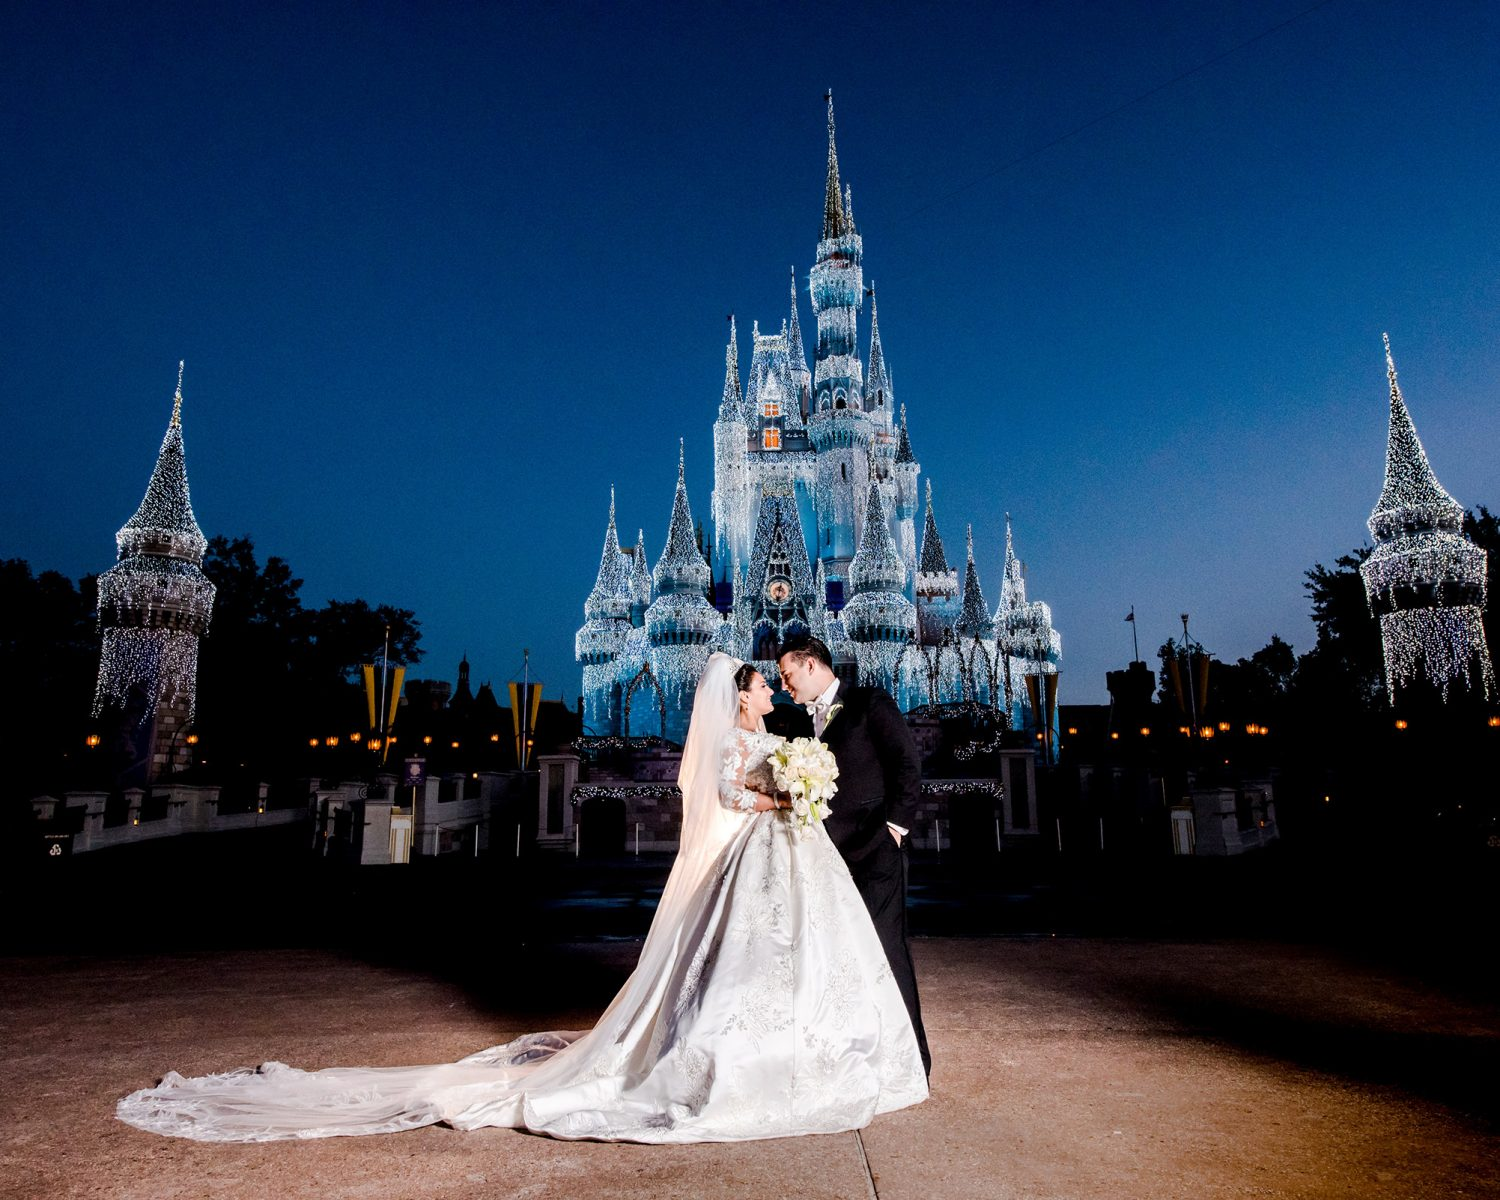 Florida Wedding - Orlando Honeymoon at Windsor Palms